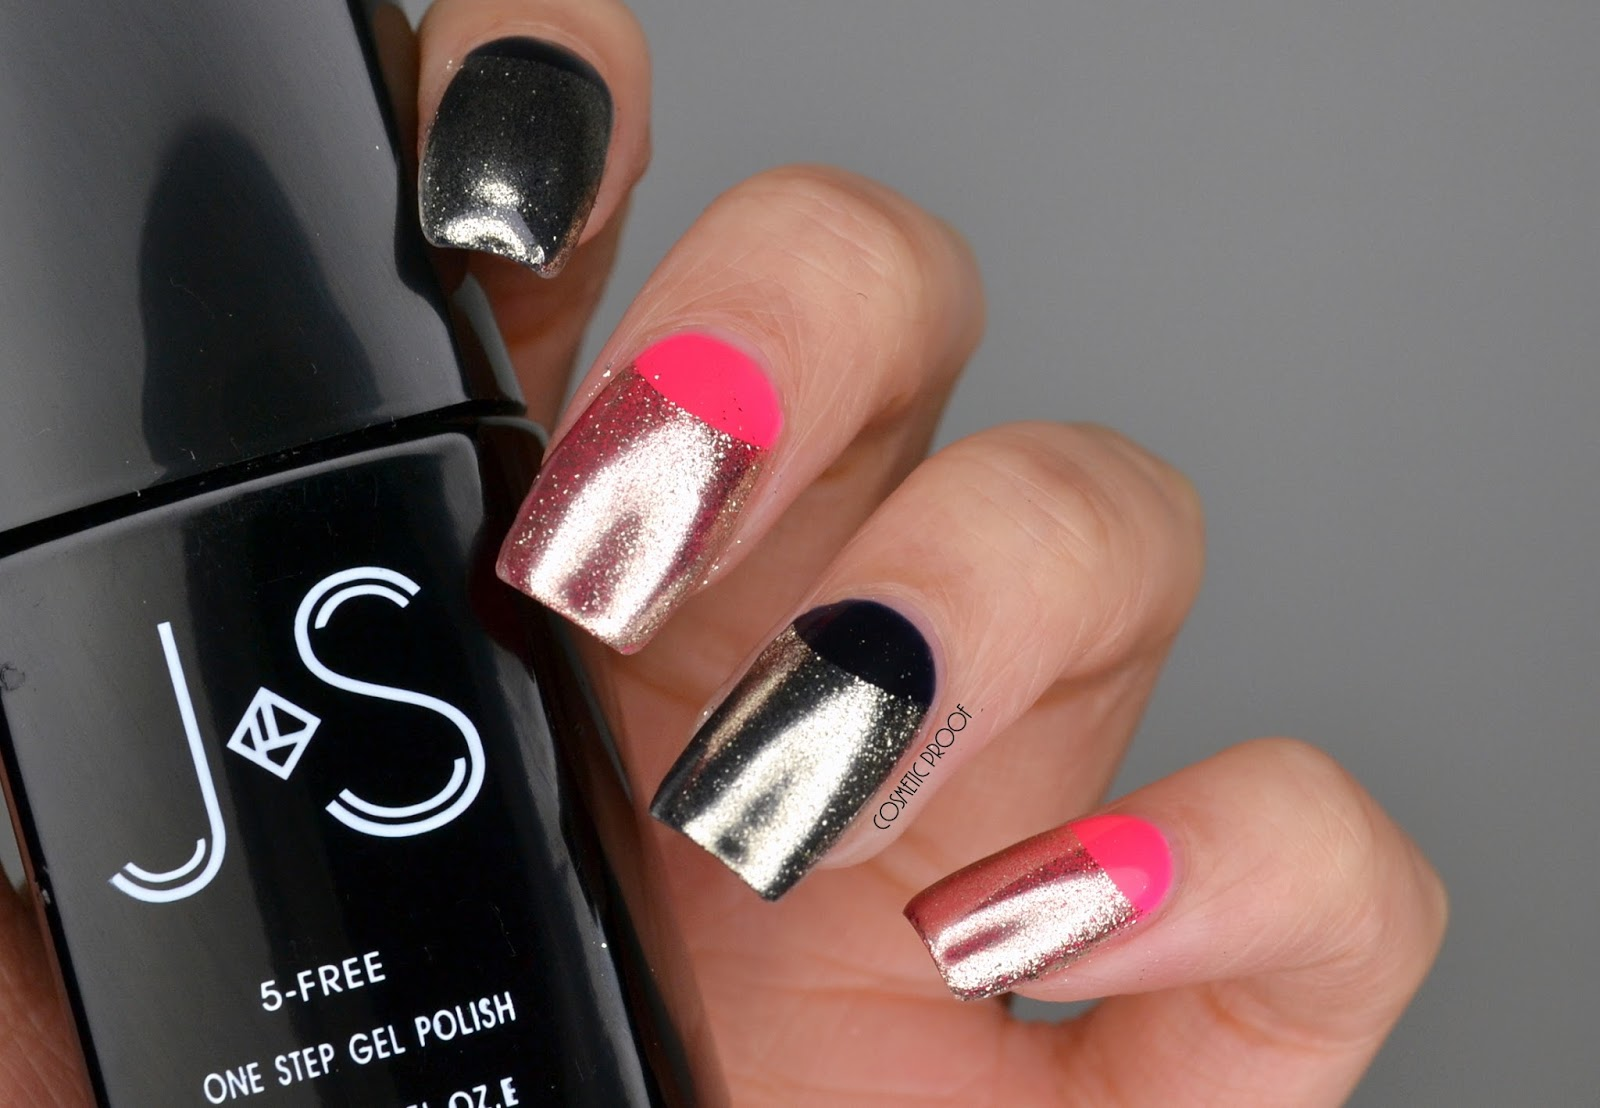 NAILS | Chrome Half Moon Gel Manicure #ManiMonday | Cosmetic Proof ...